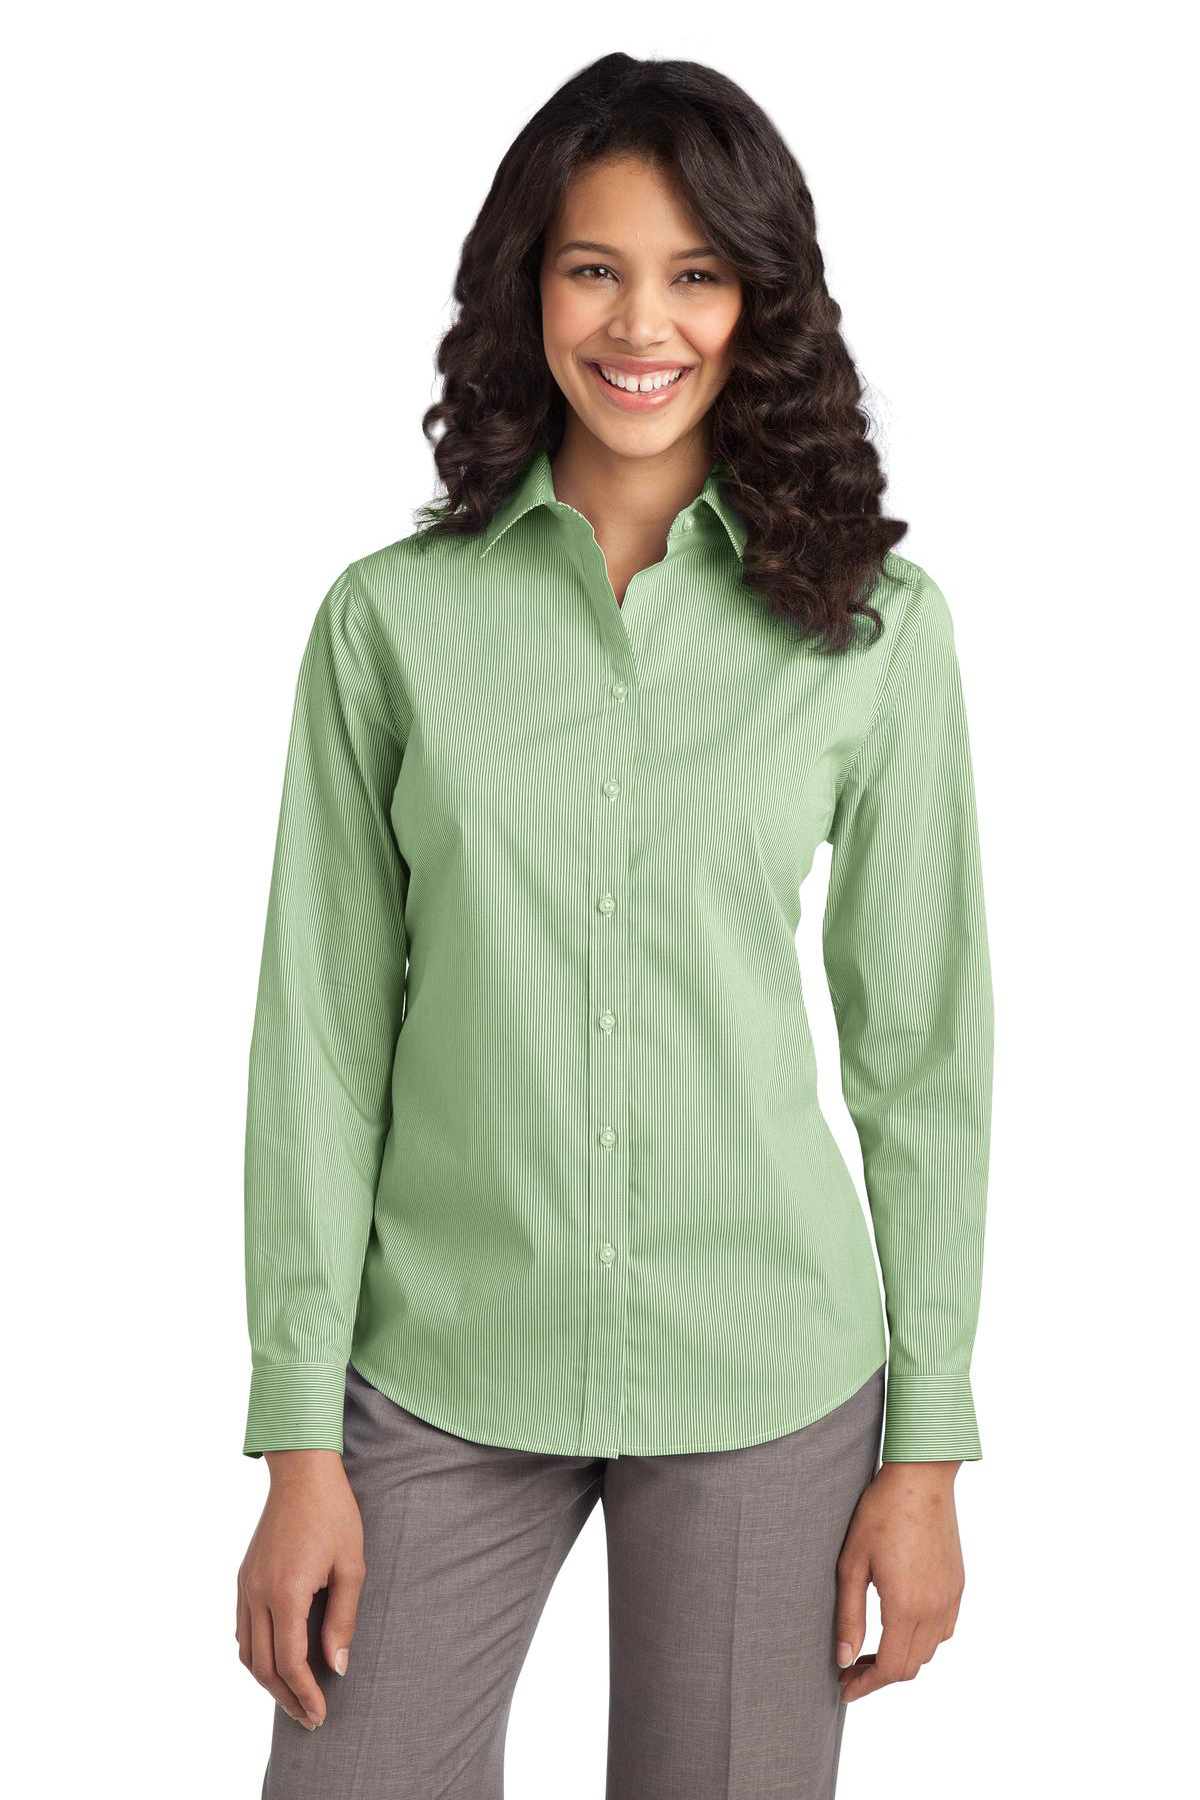 Woven-Shirts-Easy-Care-18